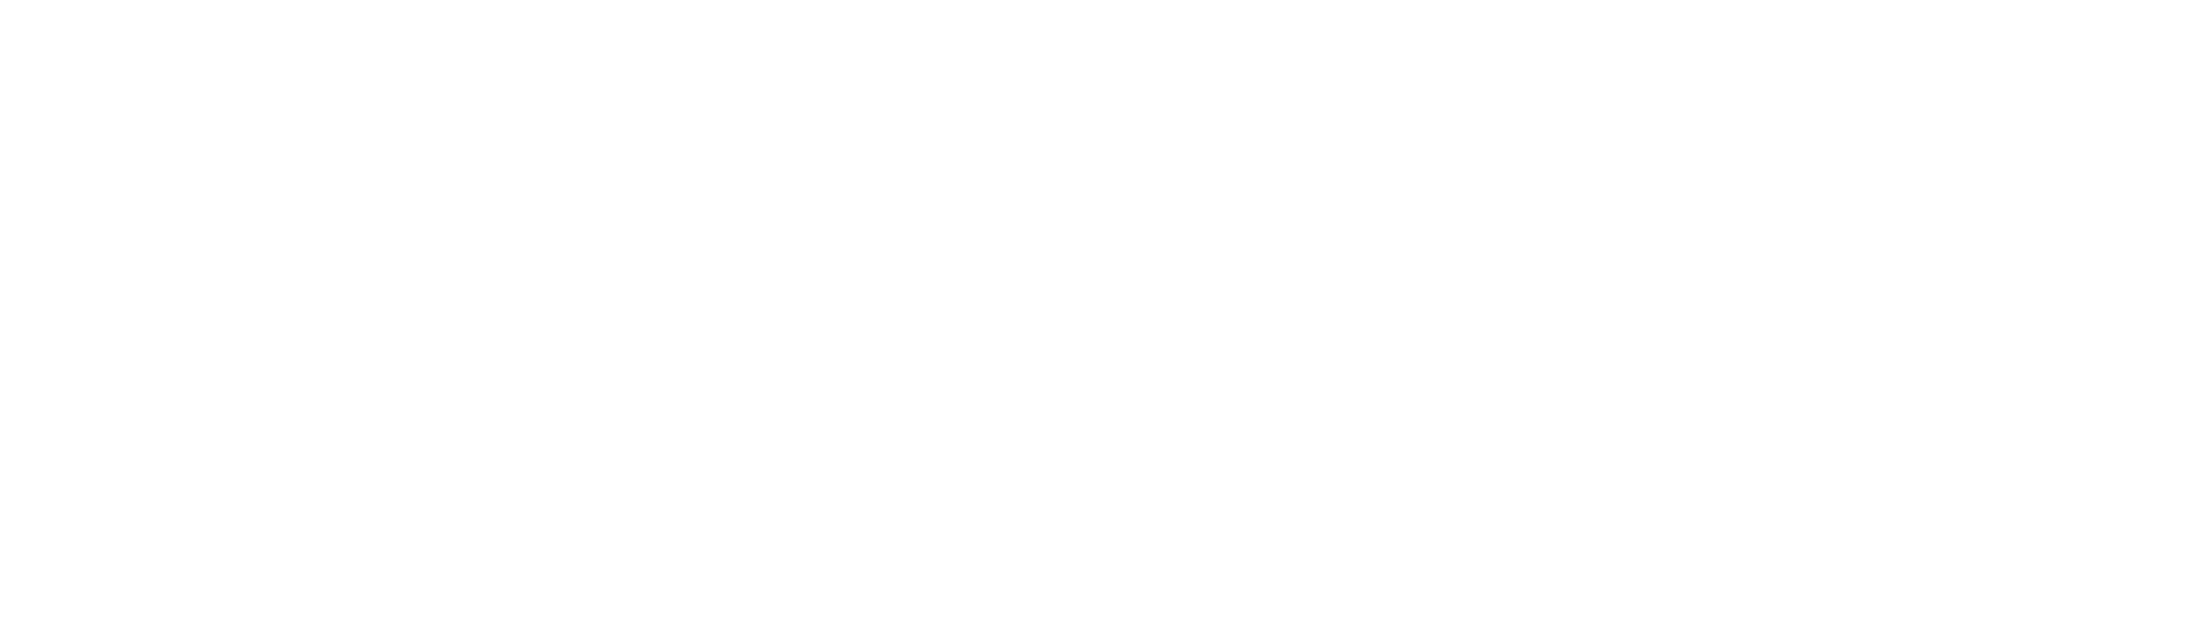 Law Society Gazette Logo